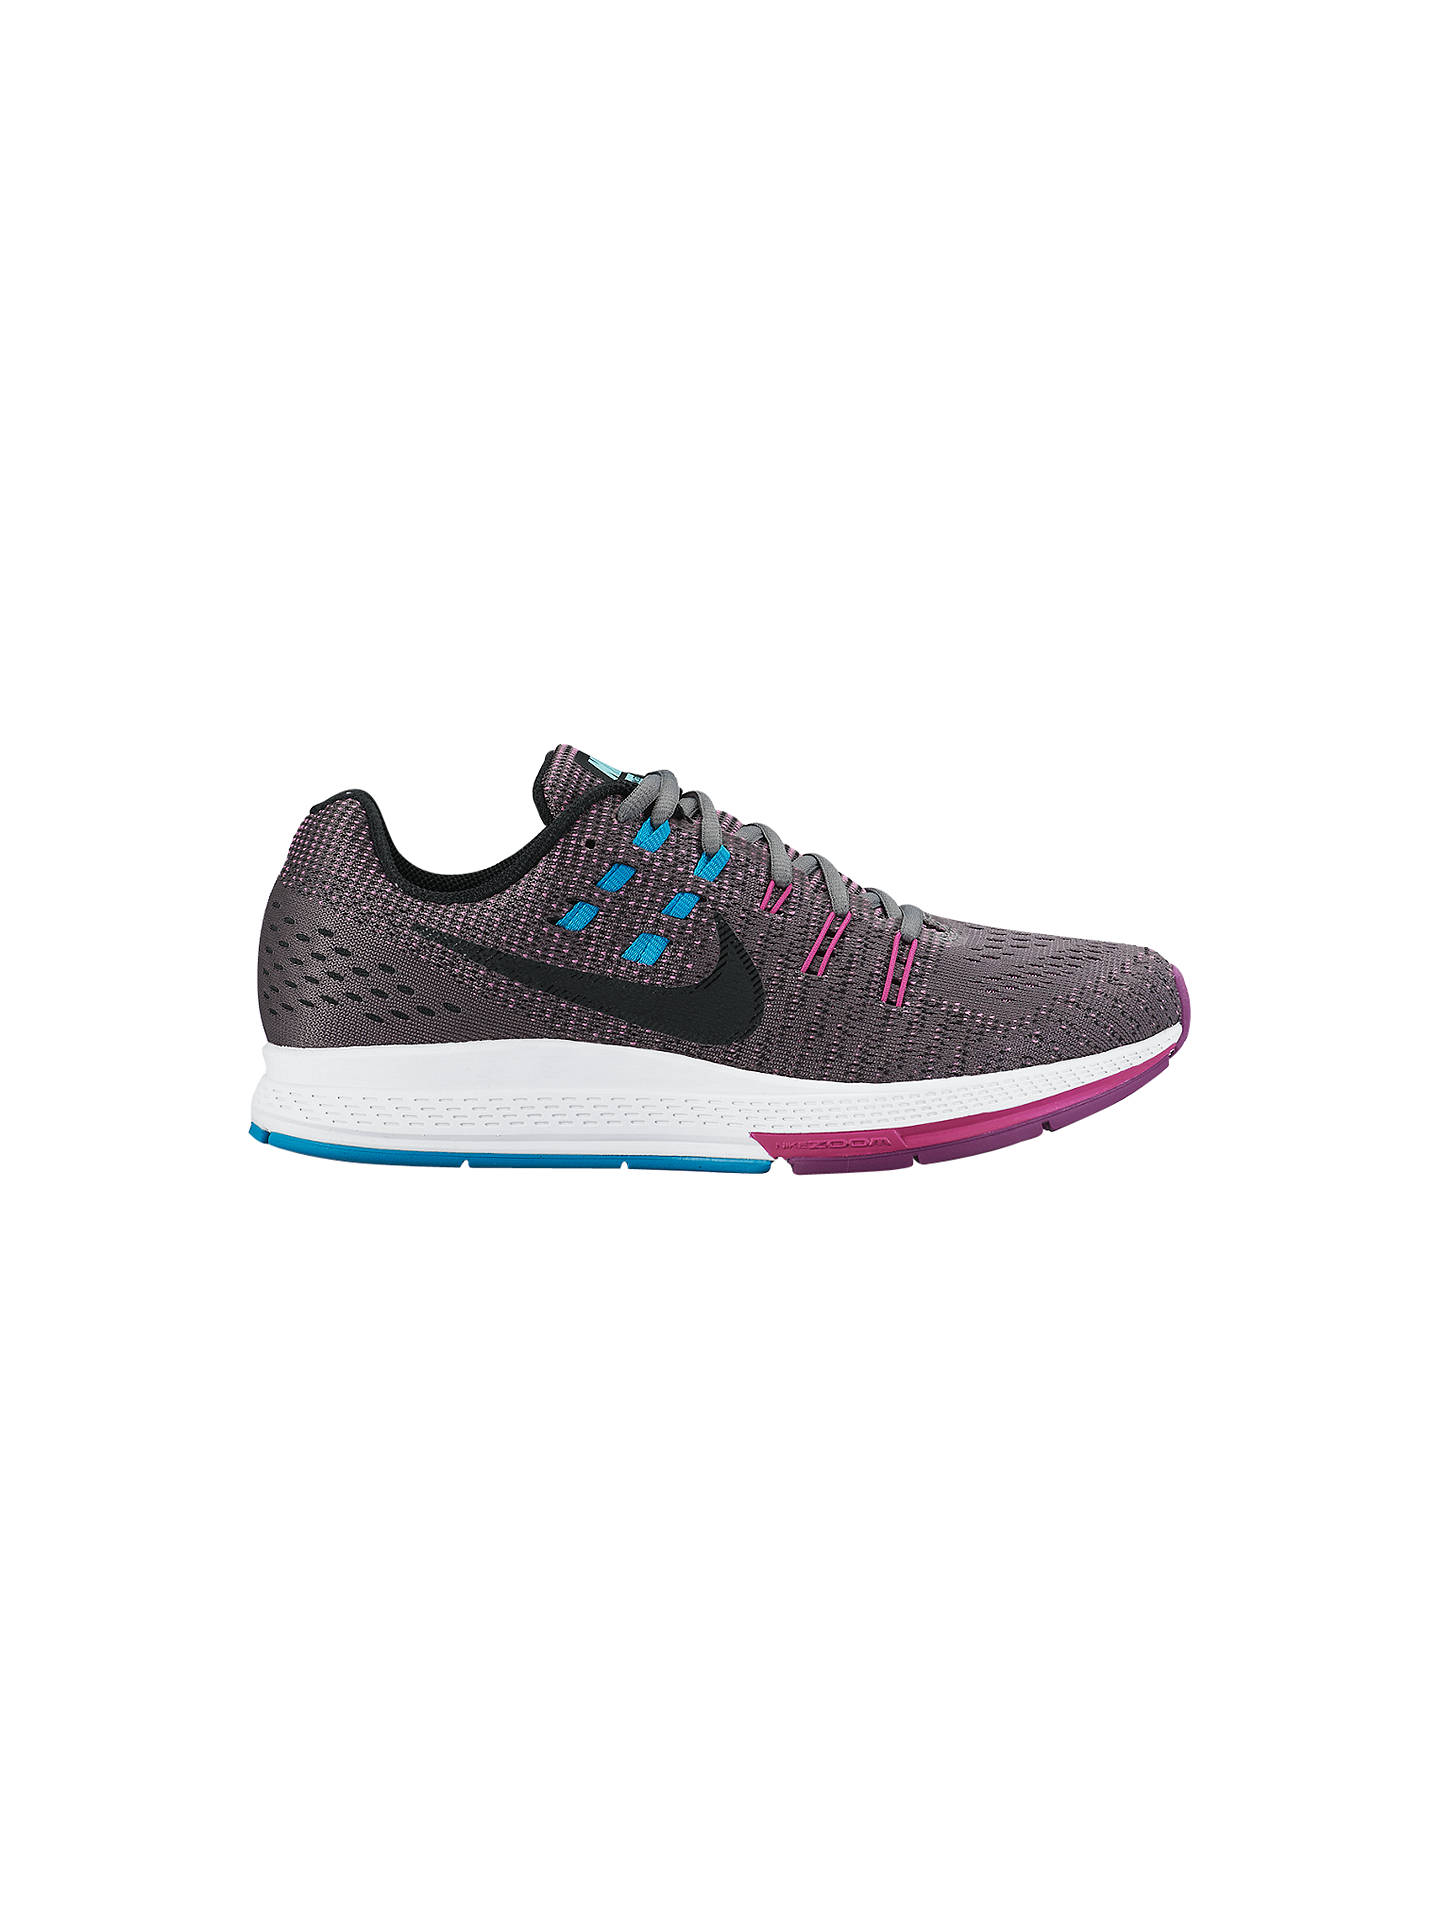 69553300882 Nike Air Zoom Structure 19 Women s Running Shoes at John Lewis ...